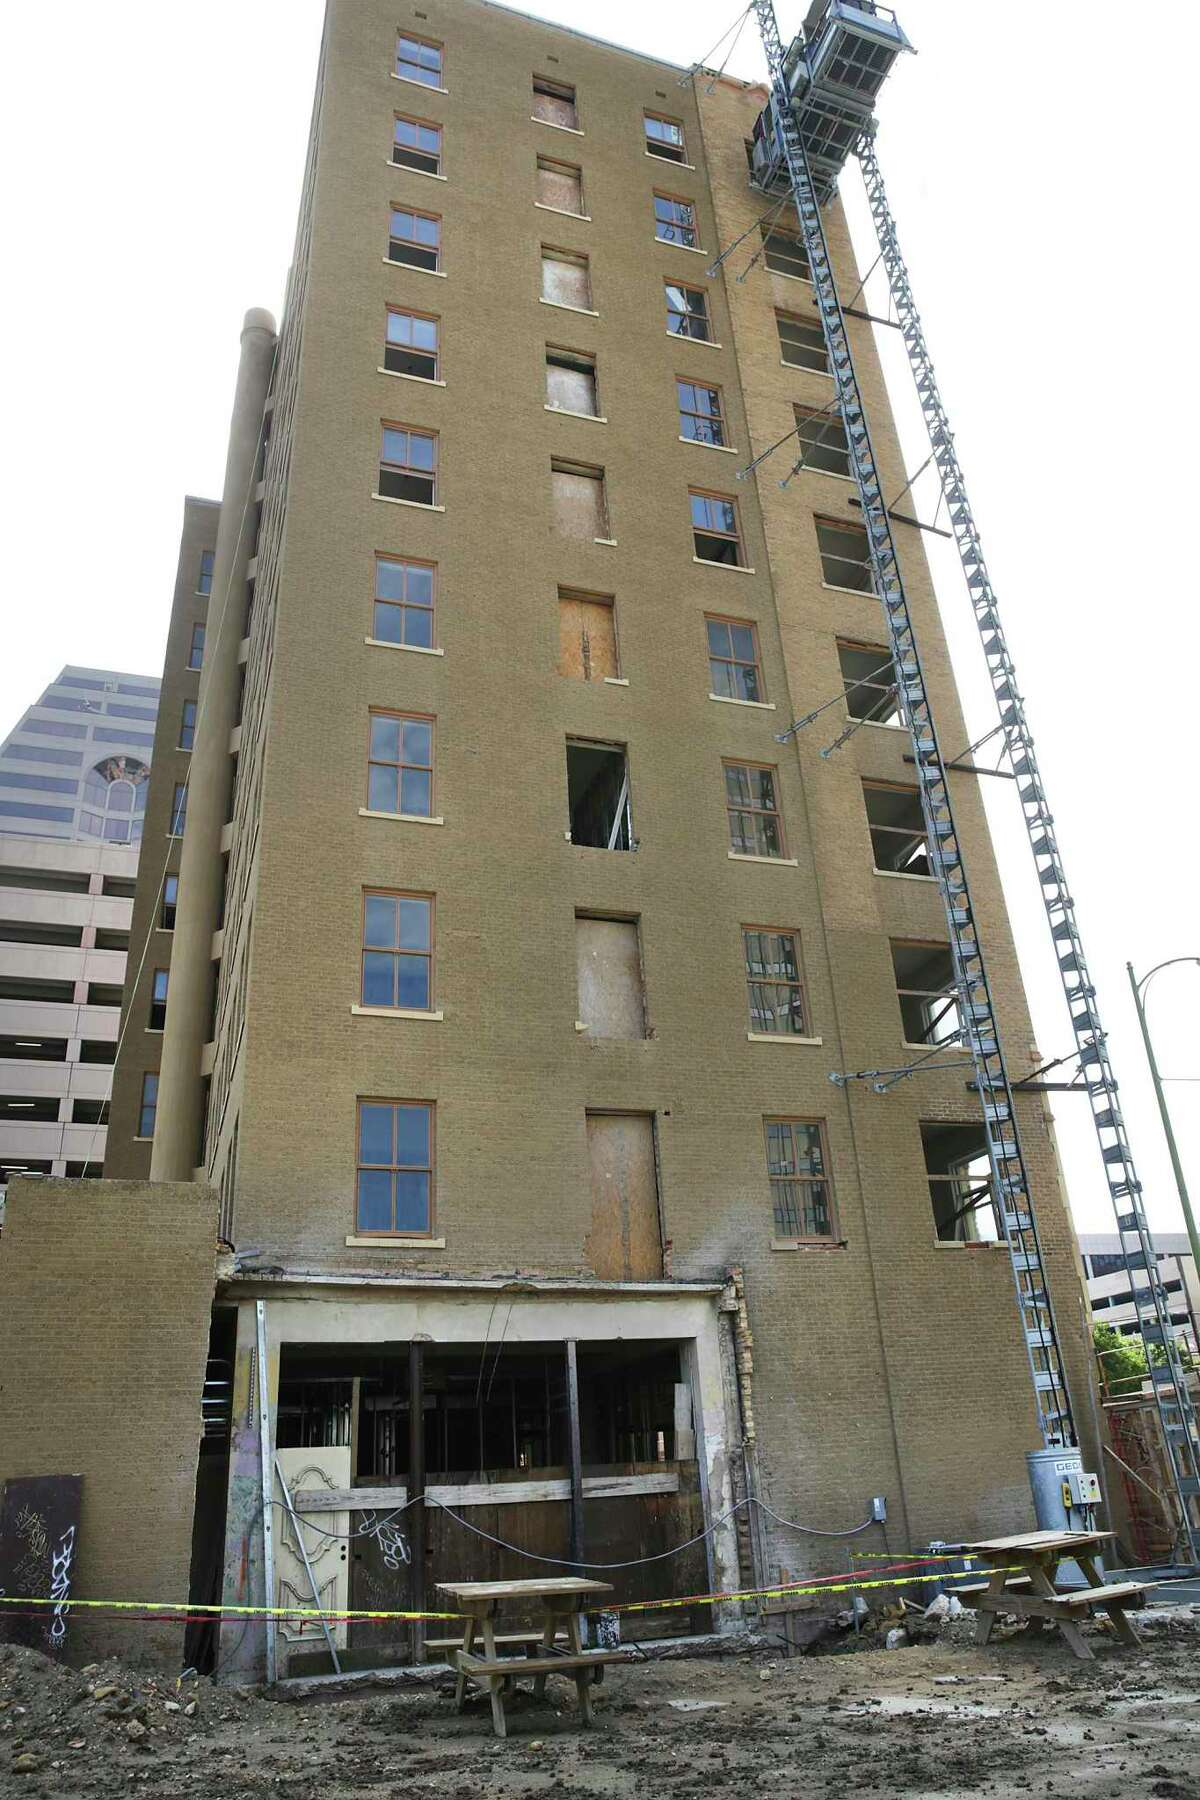 San Antonio developer Craig Glendenning is renovating the downtown building to include apartments.